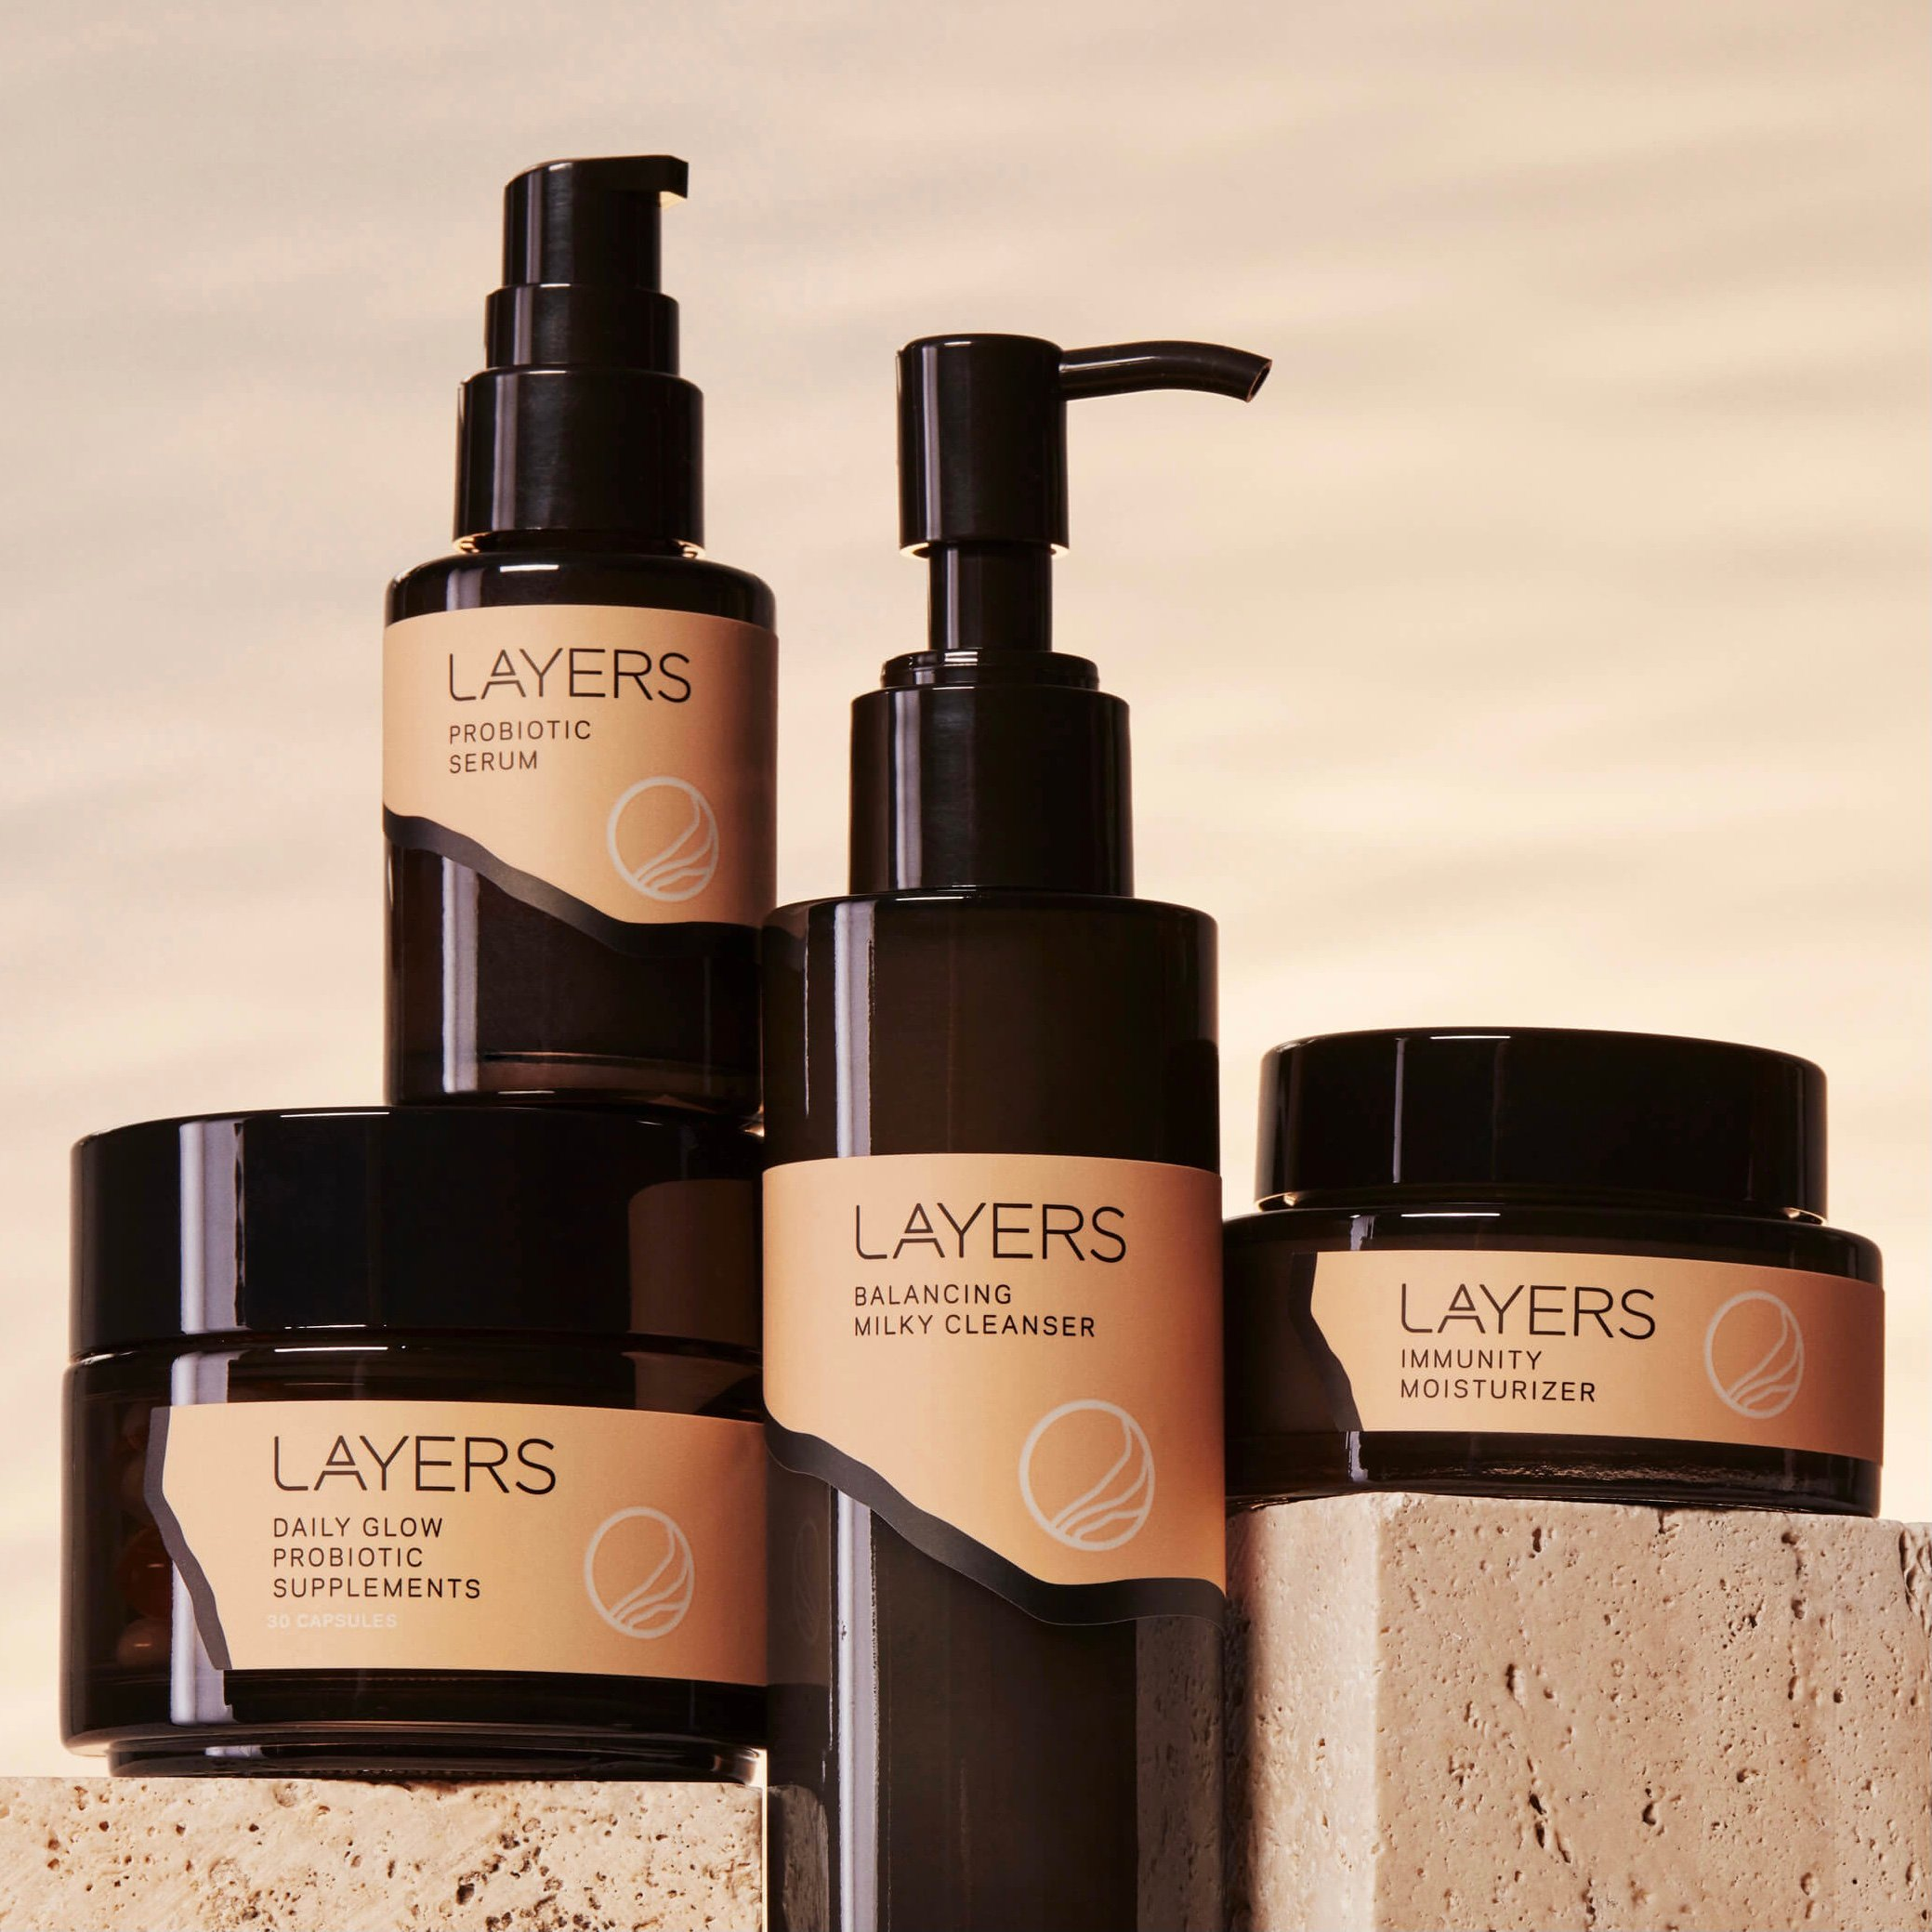 Layers Probiotic Skincare Group Product Shot with Semi-Transparent Glass Packaging and Pink Labels. For dry skin, oily skin, combination skin.